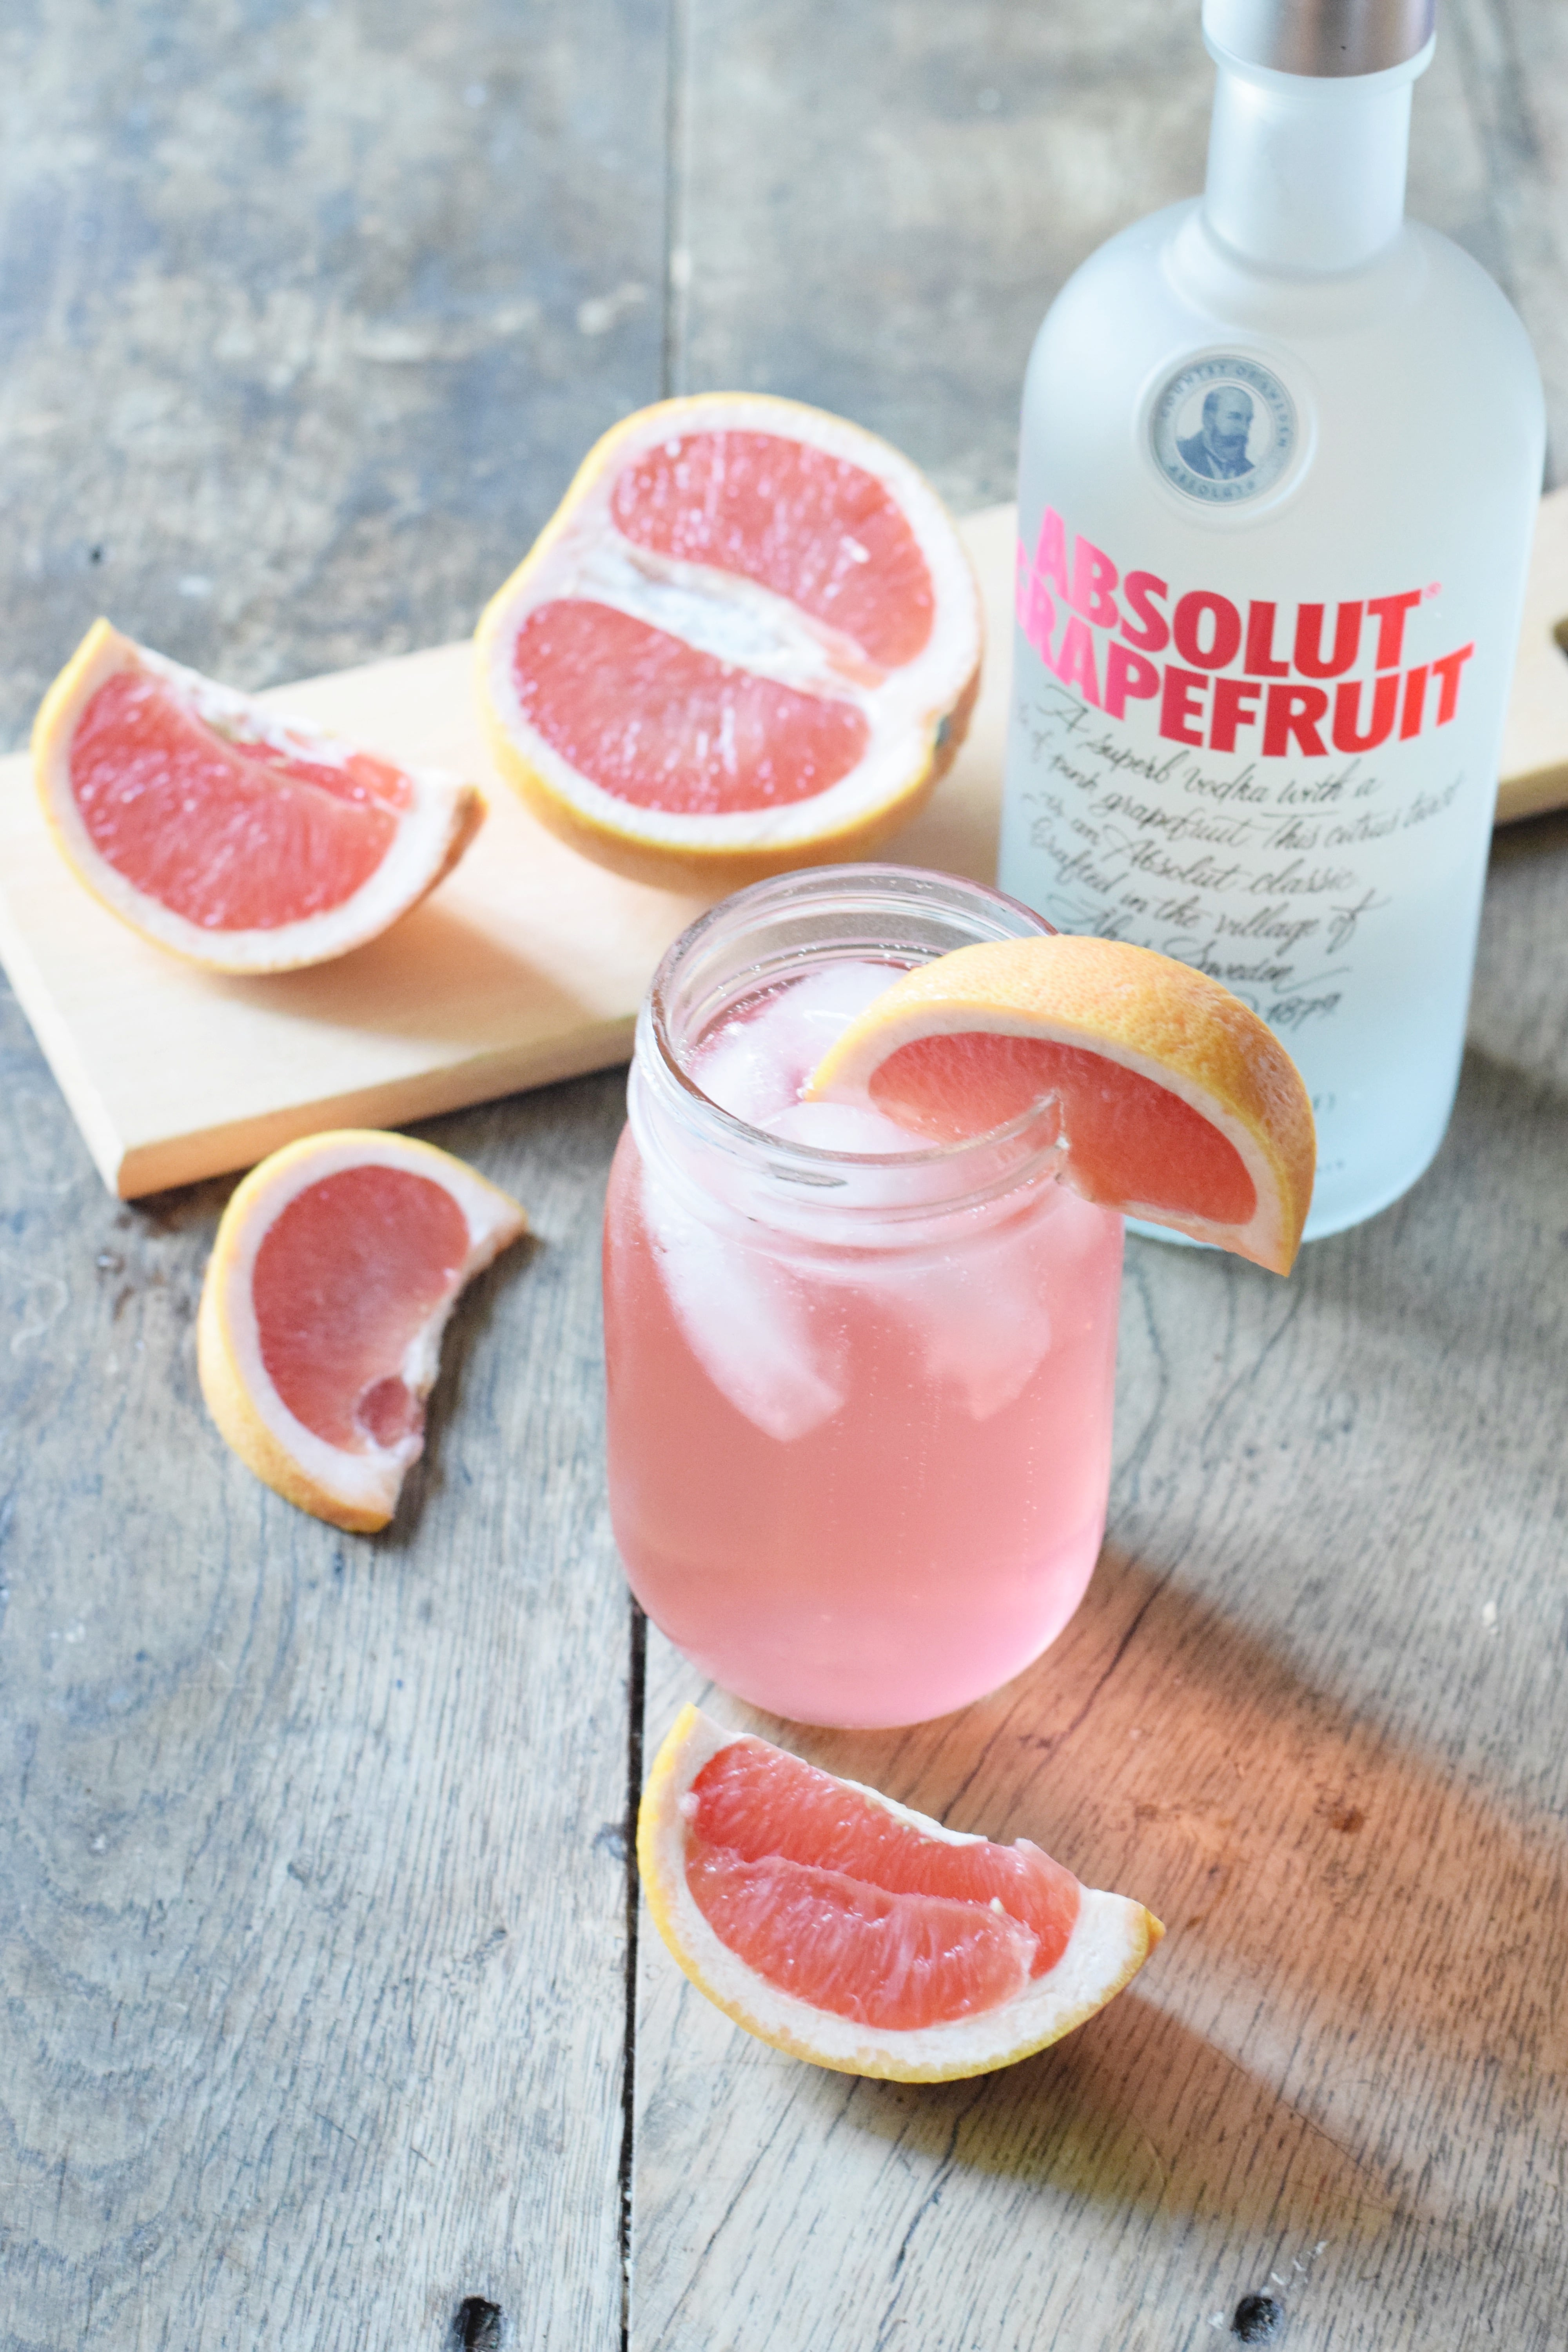 Swedish Paloma Grapefruit Cocktail - Grapefruit Cocktail - Grapefruit Juice Cocktail - Grapefruit Vodka Cocktail - ABSOLUT vodka cocktail - Summer Cocktail - Easy Cocktail - Low Carb cocktail - Light Cocktail - Grapefruit drinks - #cocktail #grapefruit #recipe